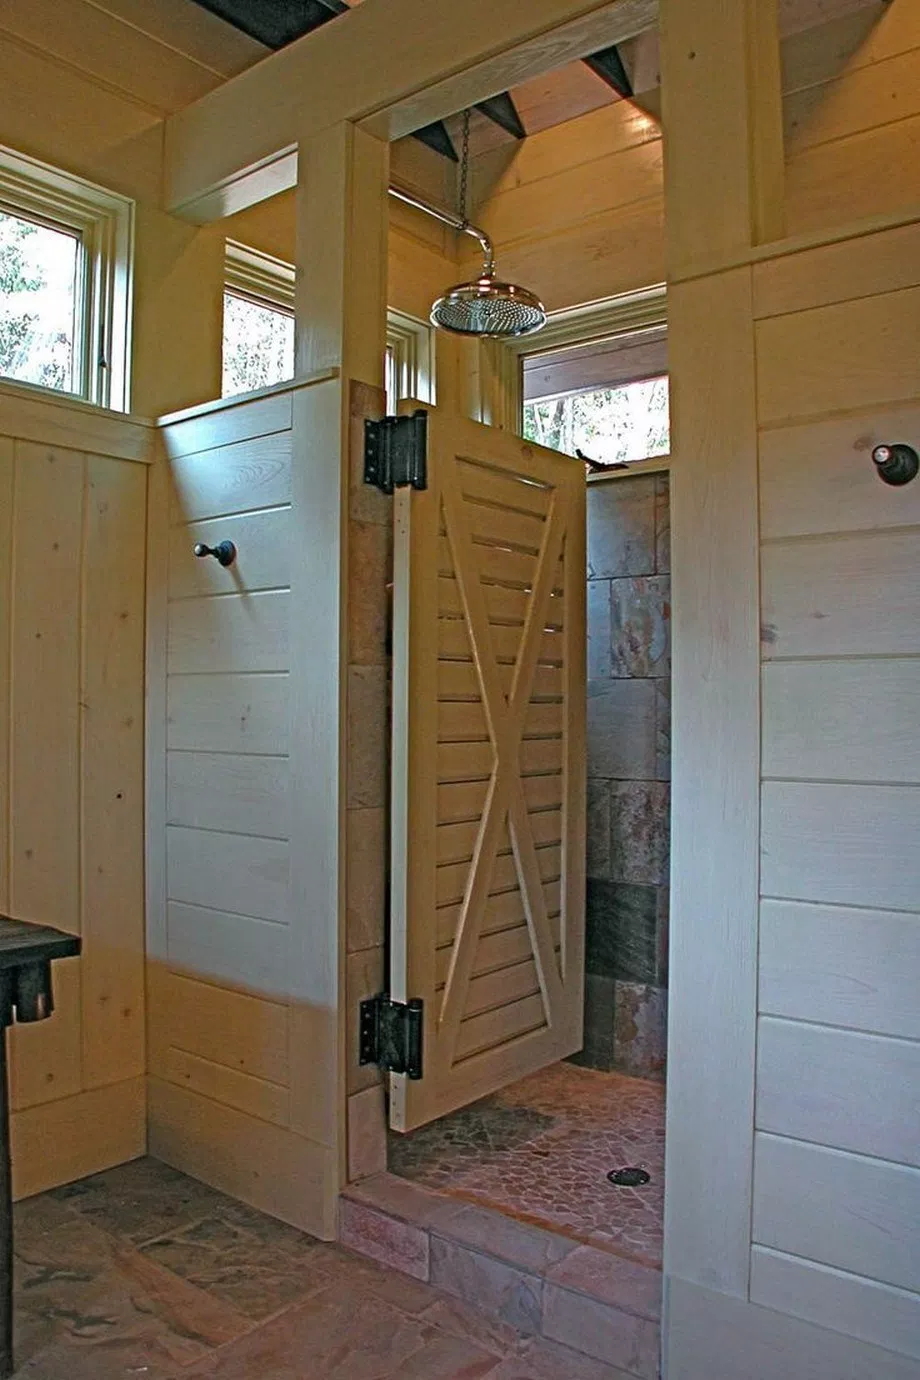 37 Elegant Bathroom Renovation Ideas 9 Diy Shower Door Pool